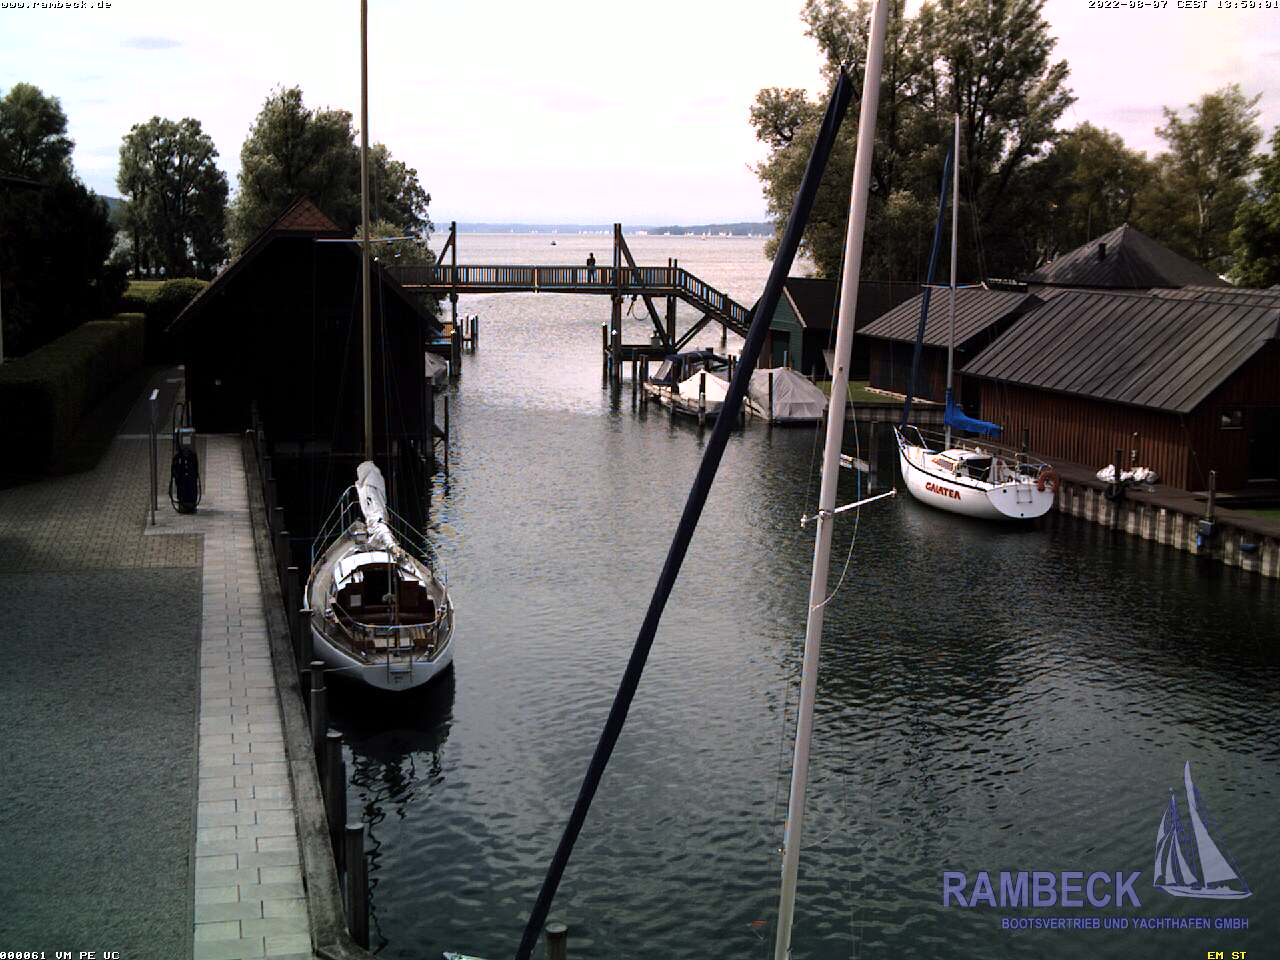 Webcam Rambeck